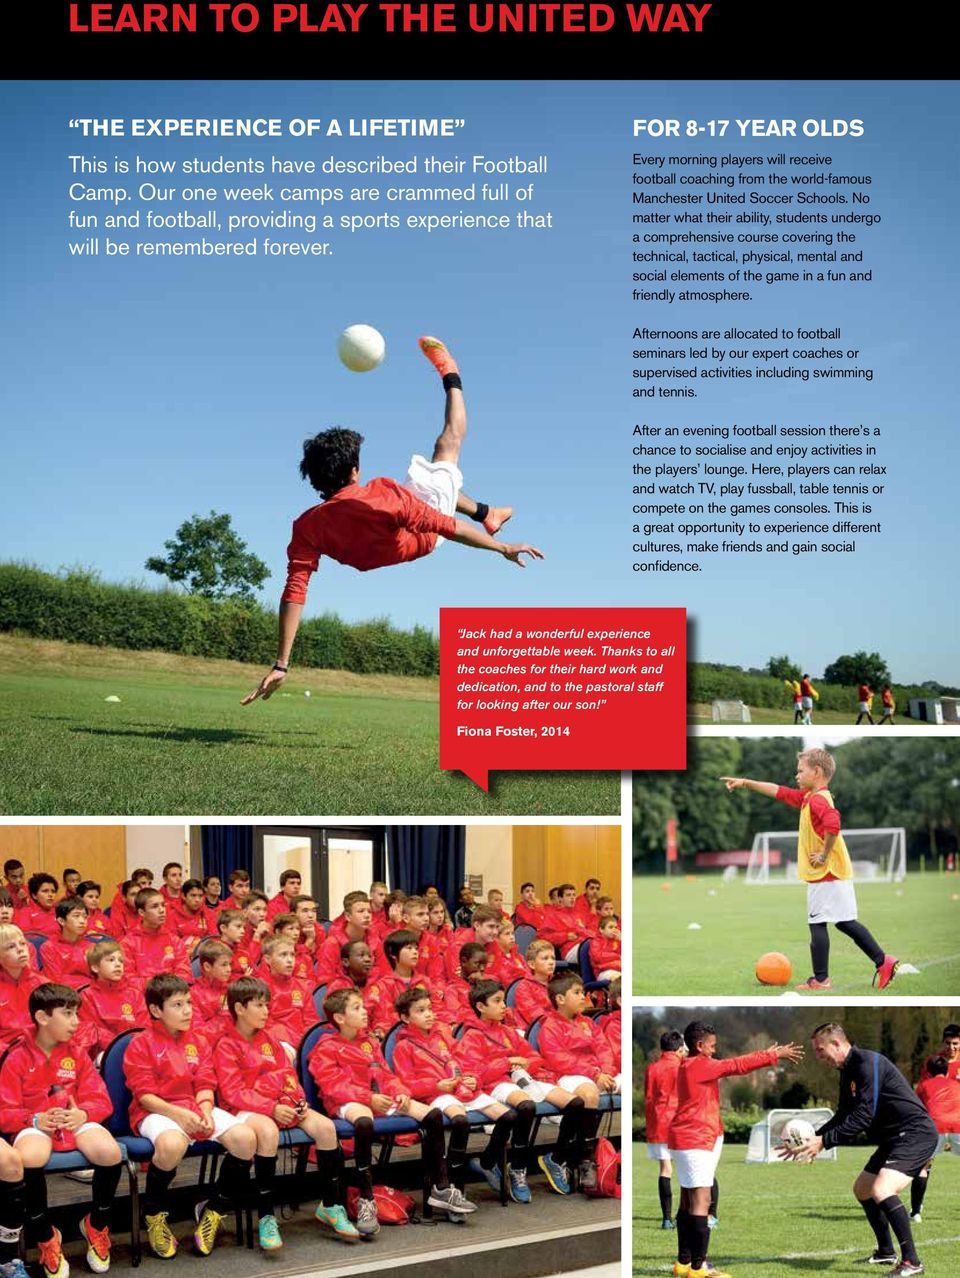 FOR 8-17 YEAR OLDS Every morning players will receive football coaching from the world-famous Manchester United Soccer Schools.